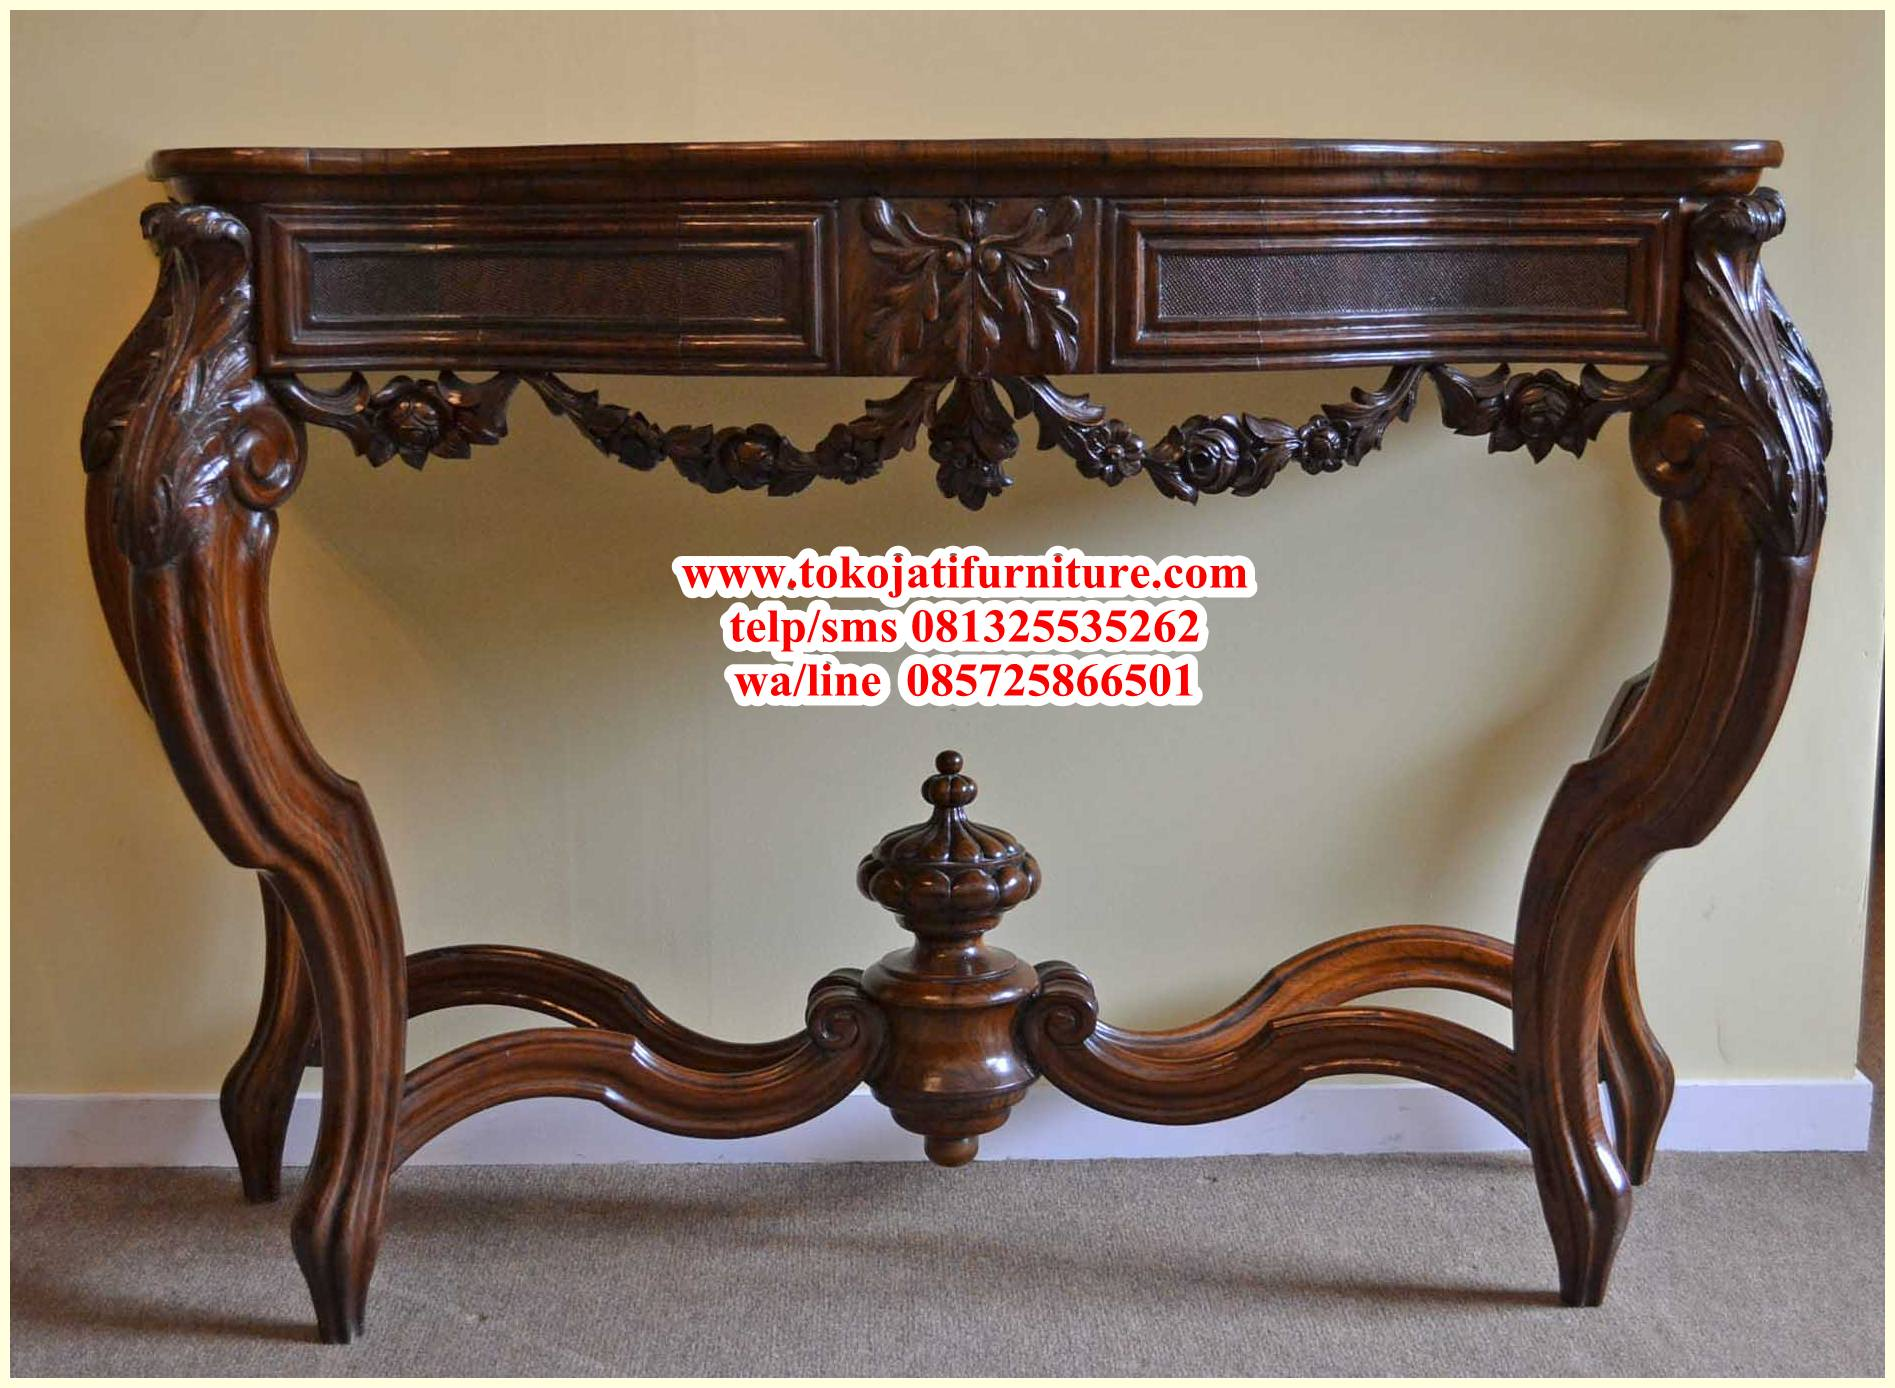 03774-Antique-French-Walnut-Console-Table-C1840-1 meja rias konsole jati natural walnut